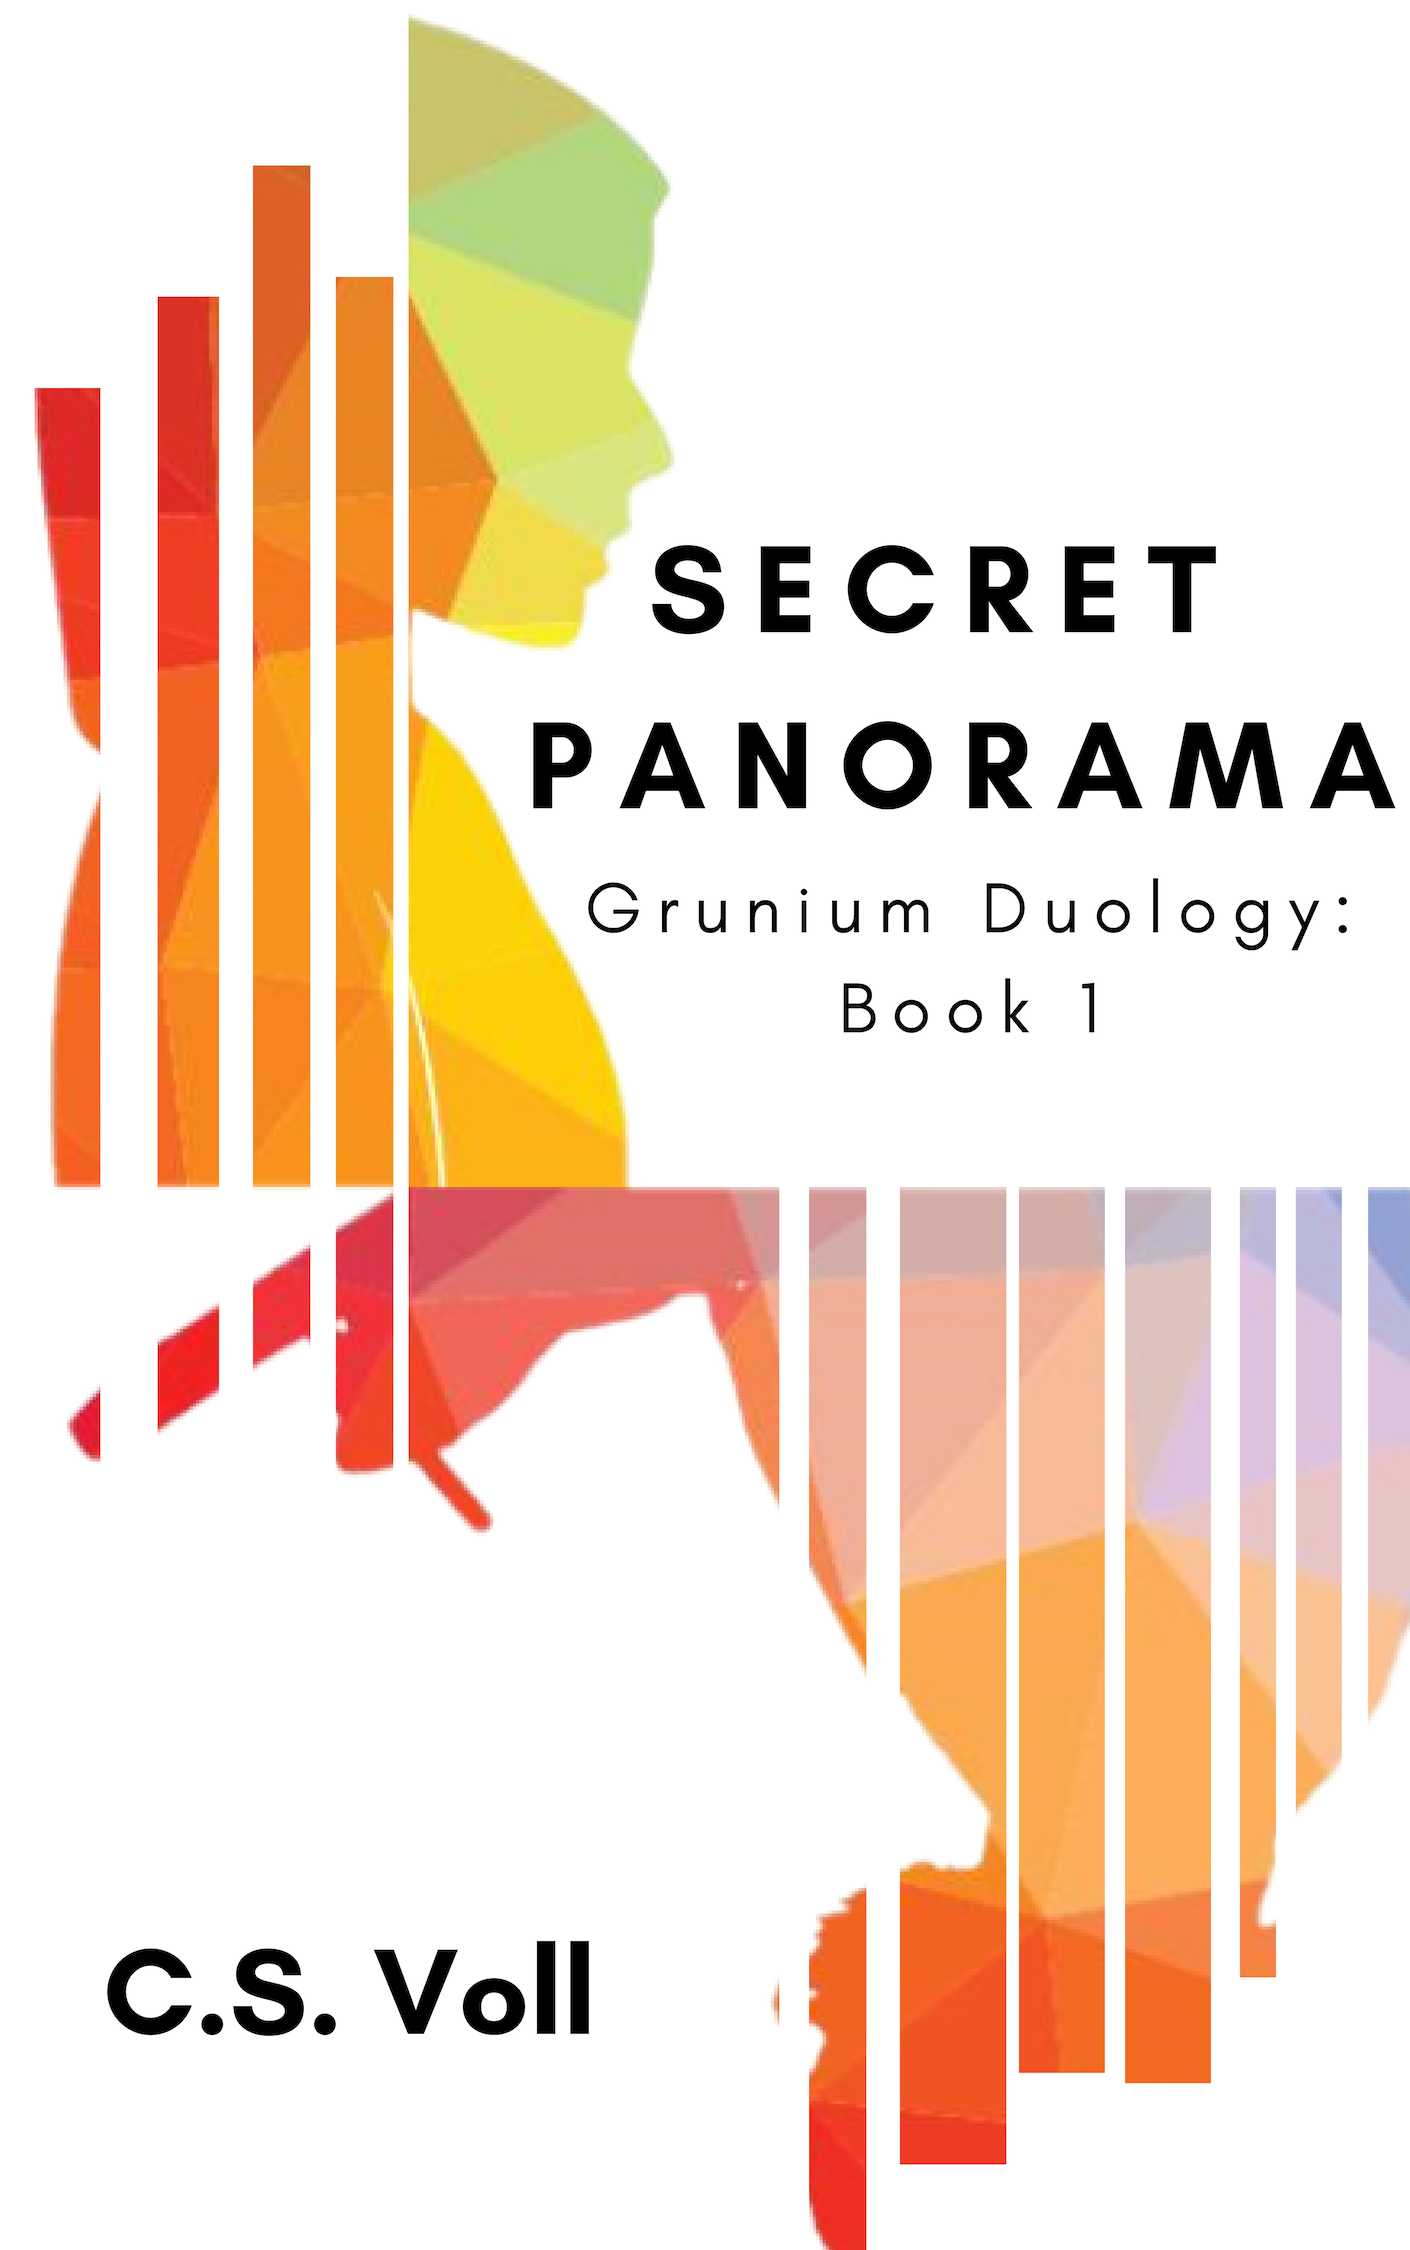 secret panoramagrunium duologybook 1 - Written by C.S. VollReleases February 7, 2019